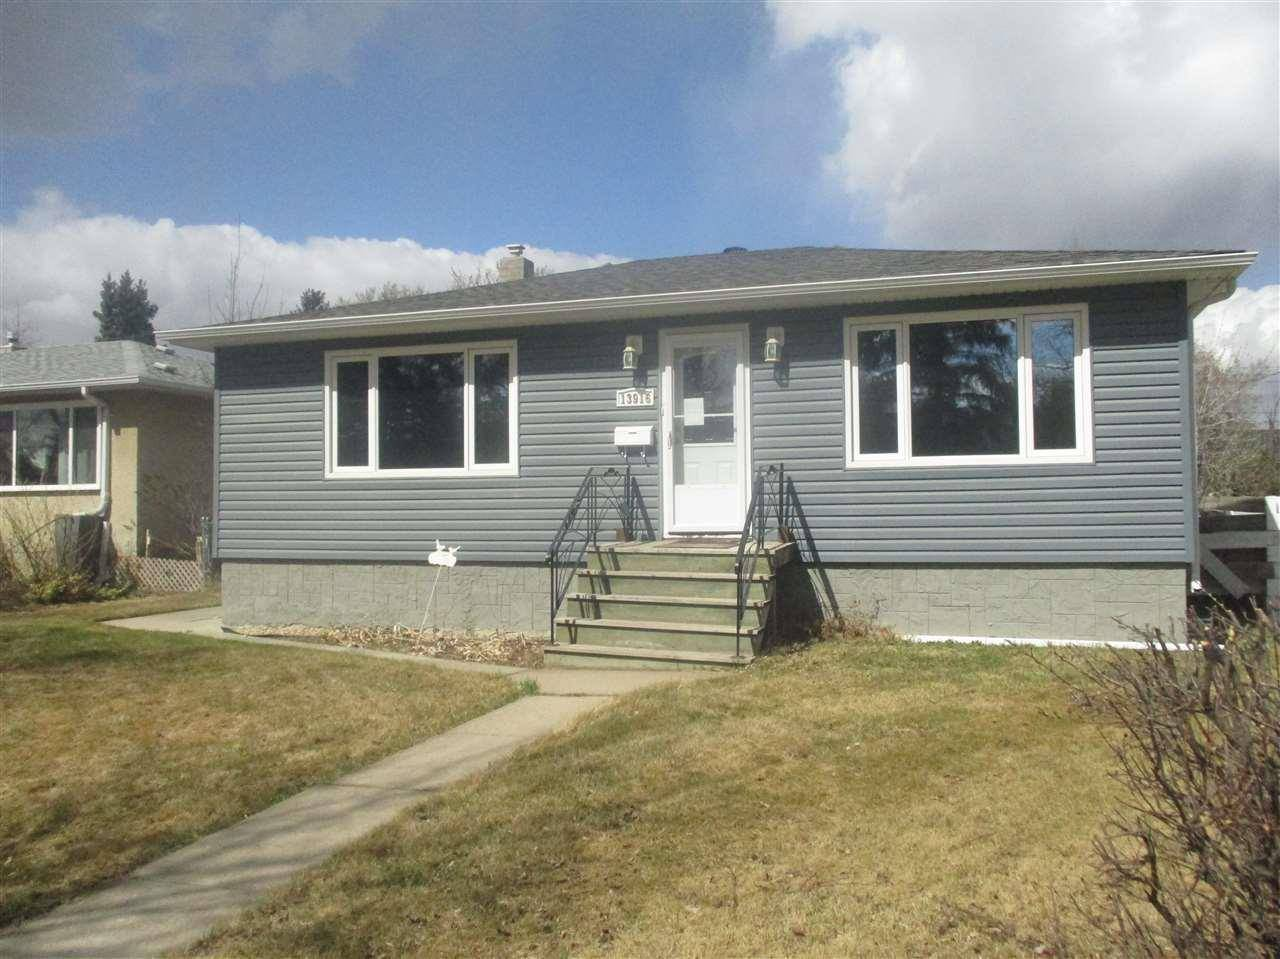 House for sale at 13916 109 Ave Nw Edmonton Alberta - MLS: E4189421